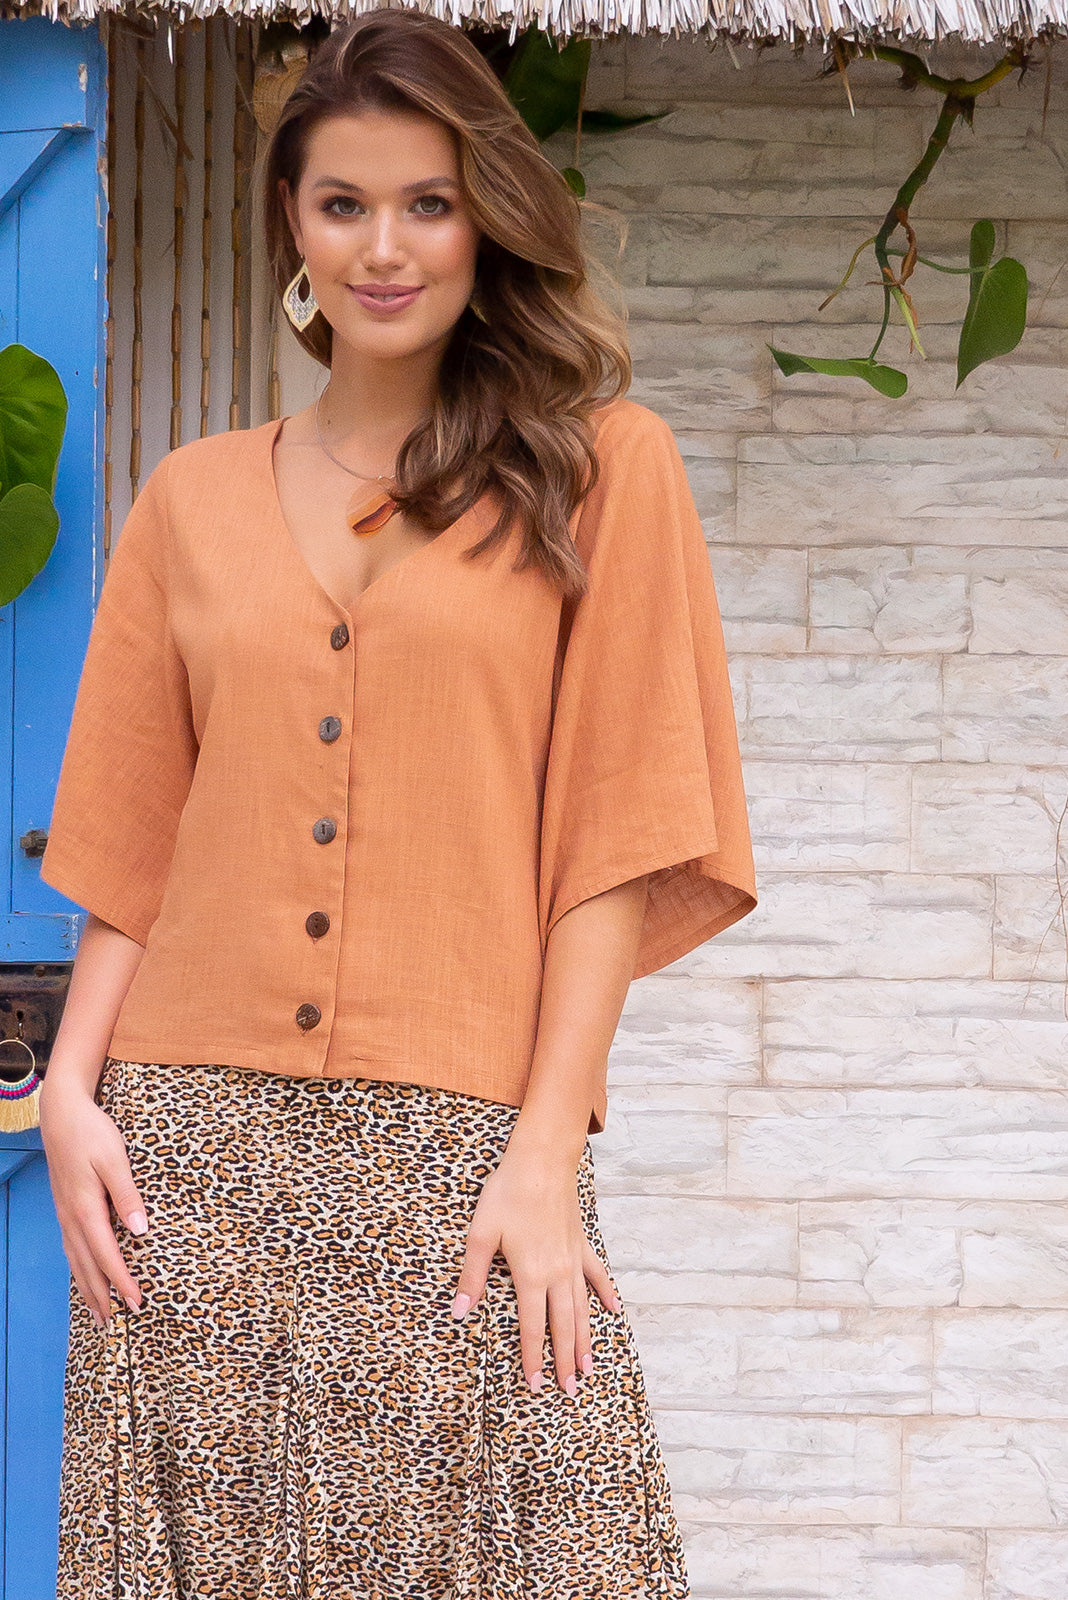 Mika Moccasin Cinnamon linen luxe fabric top features a button front, flattering v neckline and elbow length sleeve, perfect for pairing with maxi skirts for a chic boho romantic style